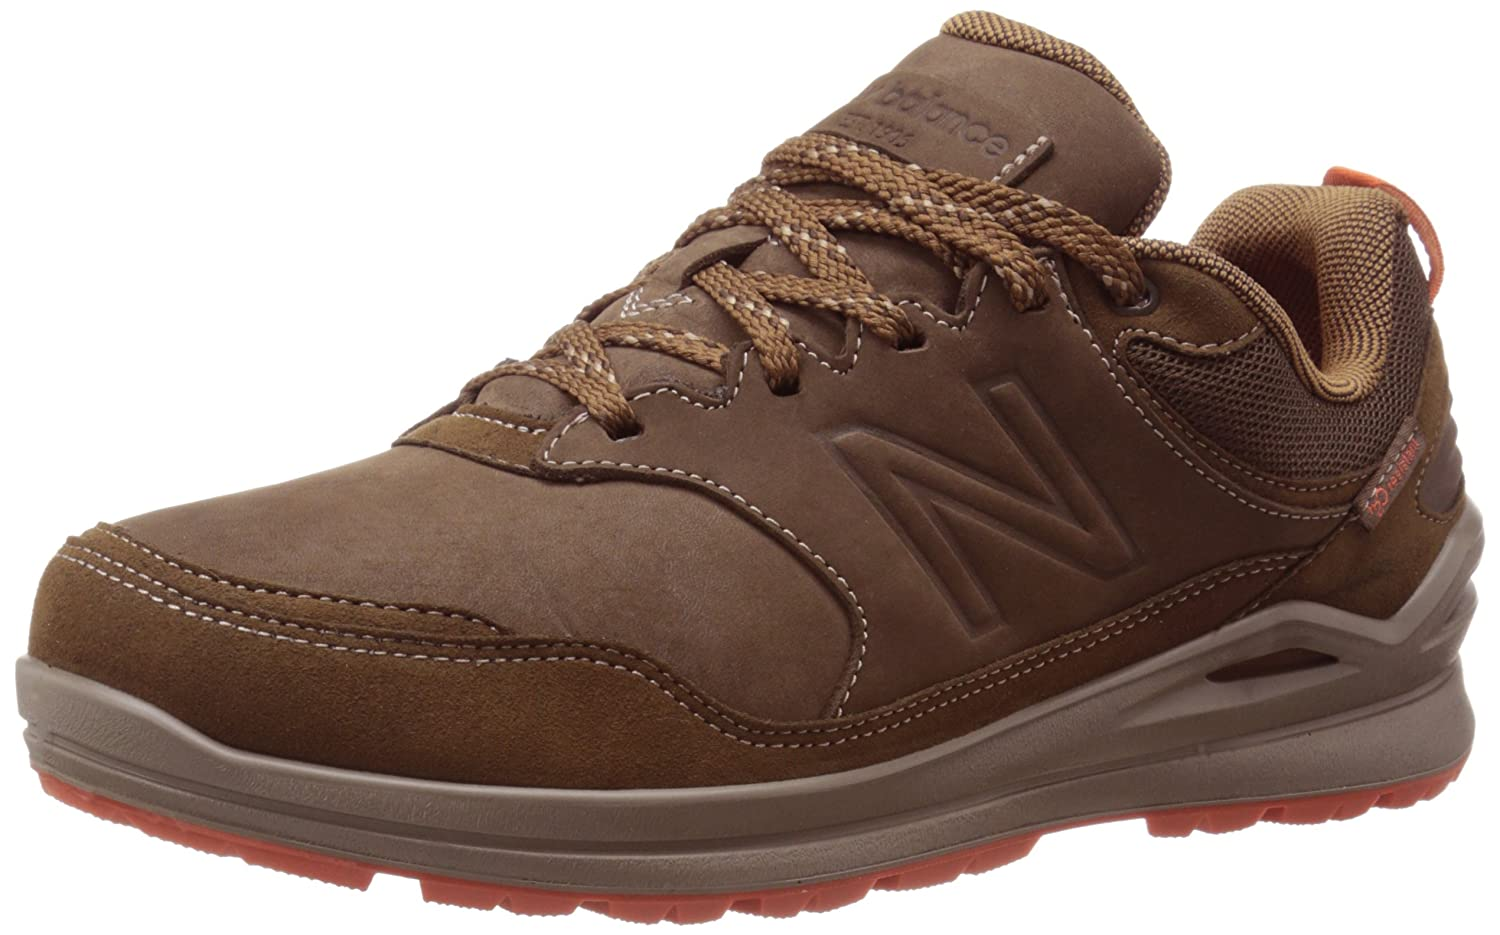 New Balance Men's MW3000 Walking Shoe 11 4E US|Brown